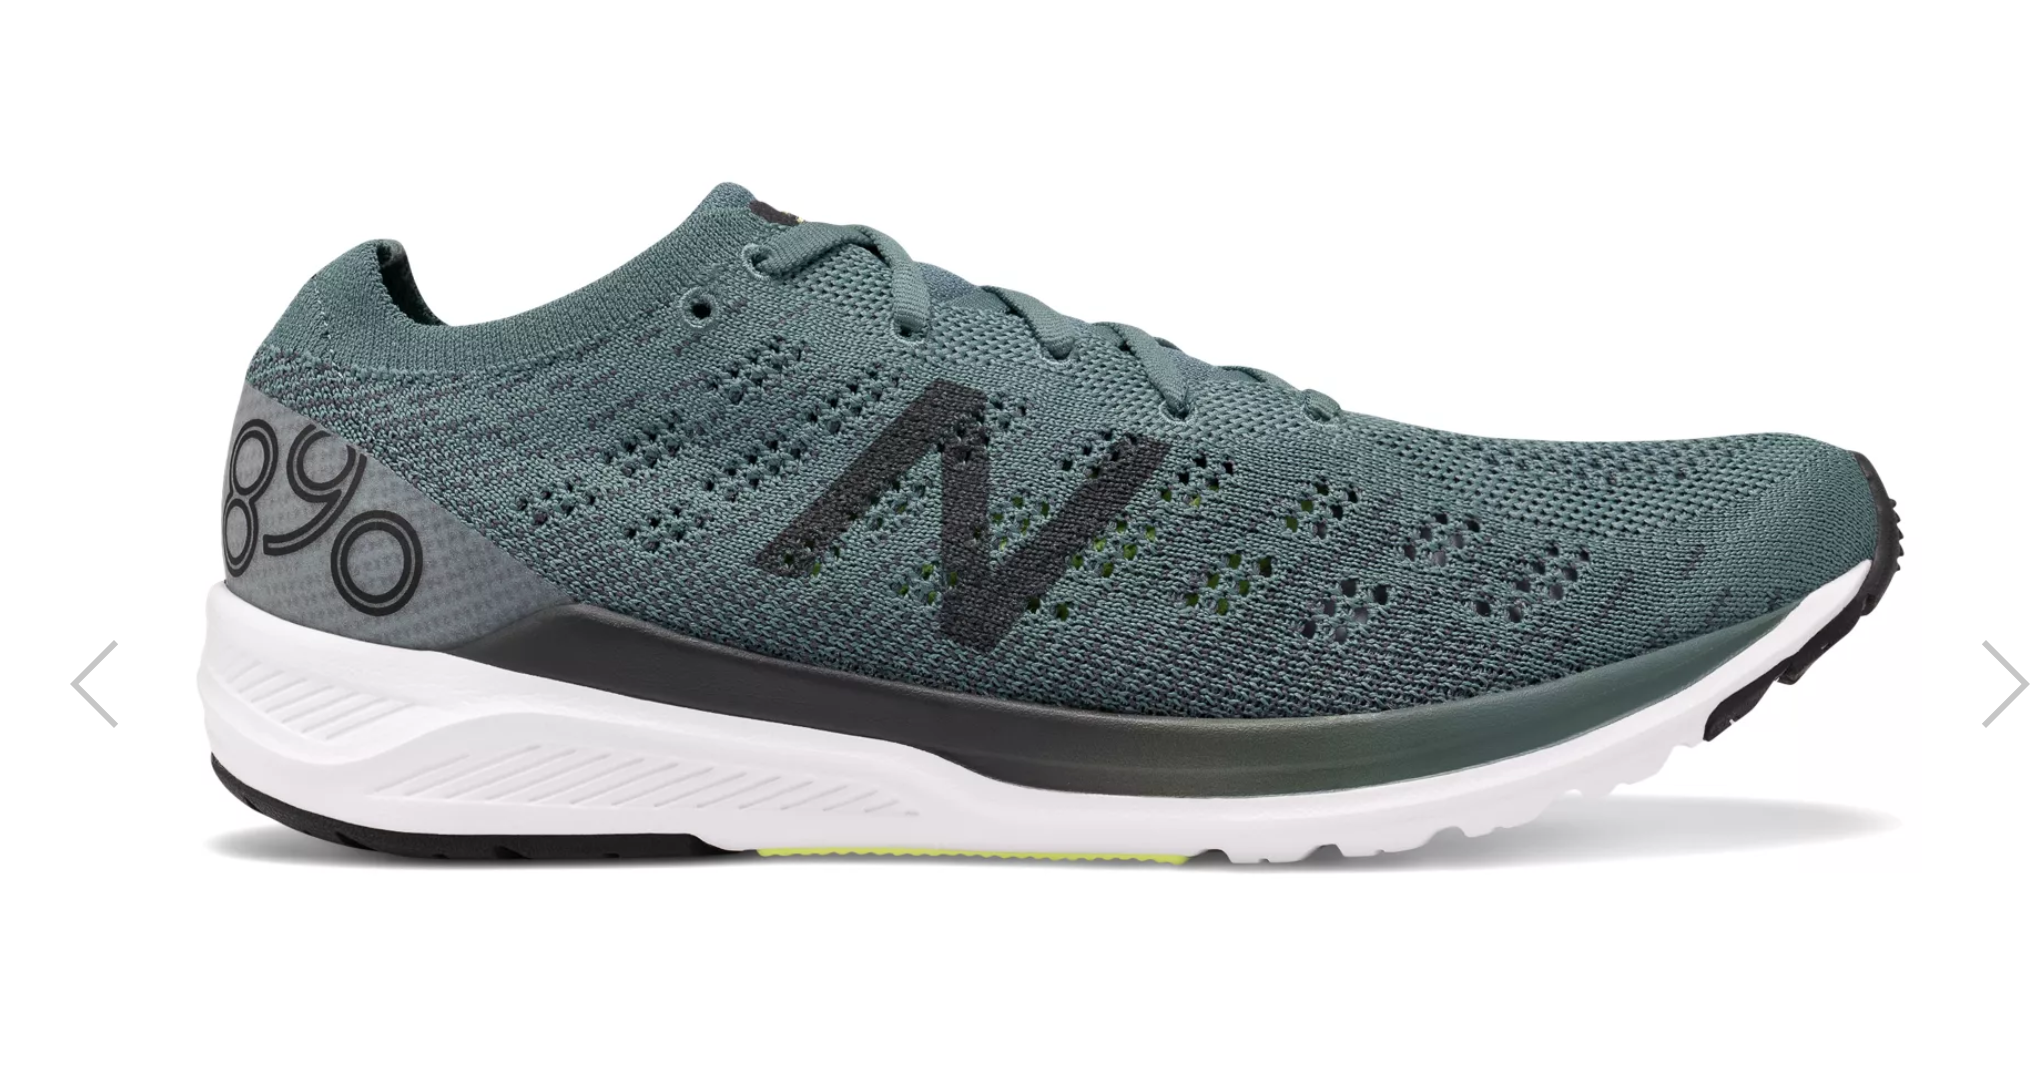 5901fd4a6 Best New Balance Running Shoes | New Balance Shoe Reviews 2019